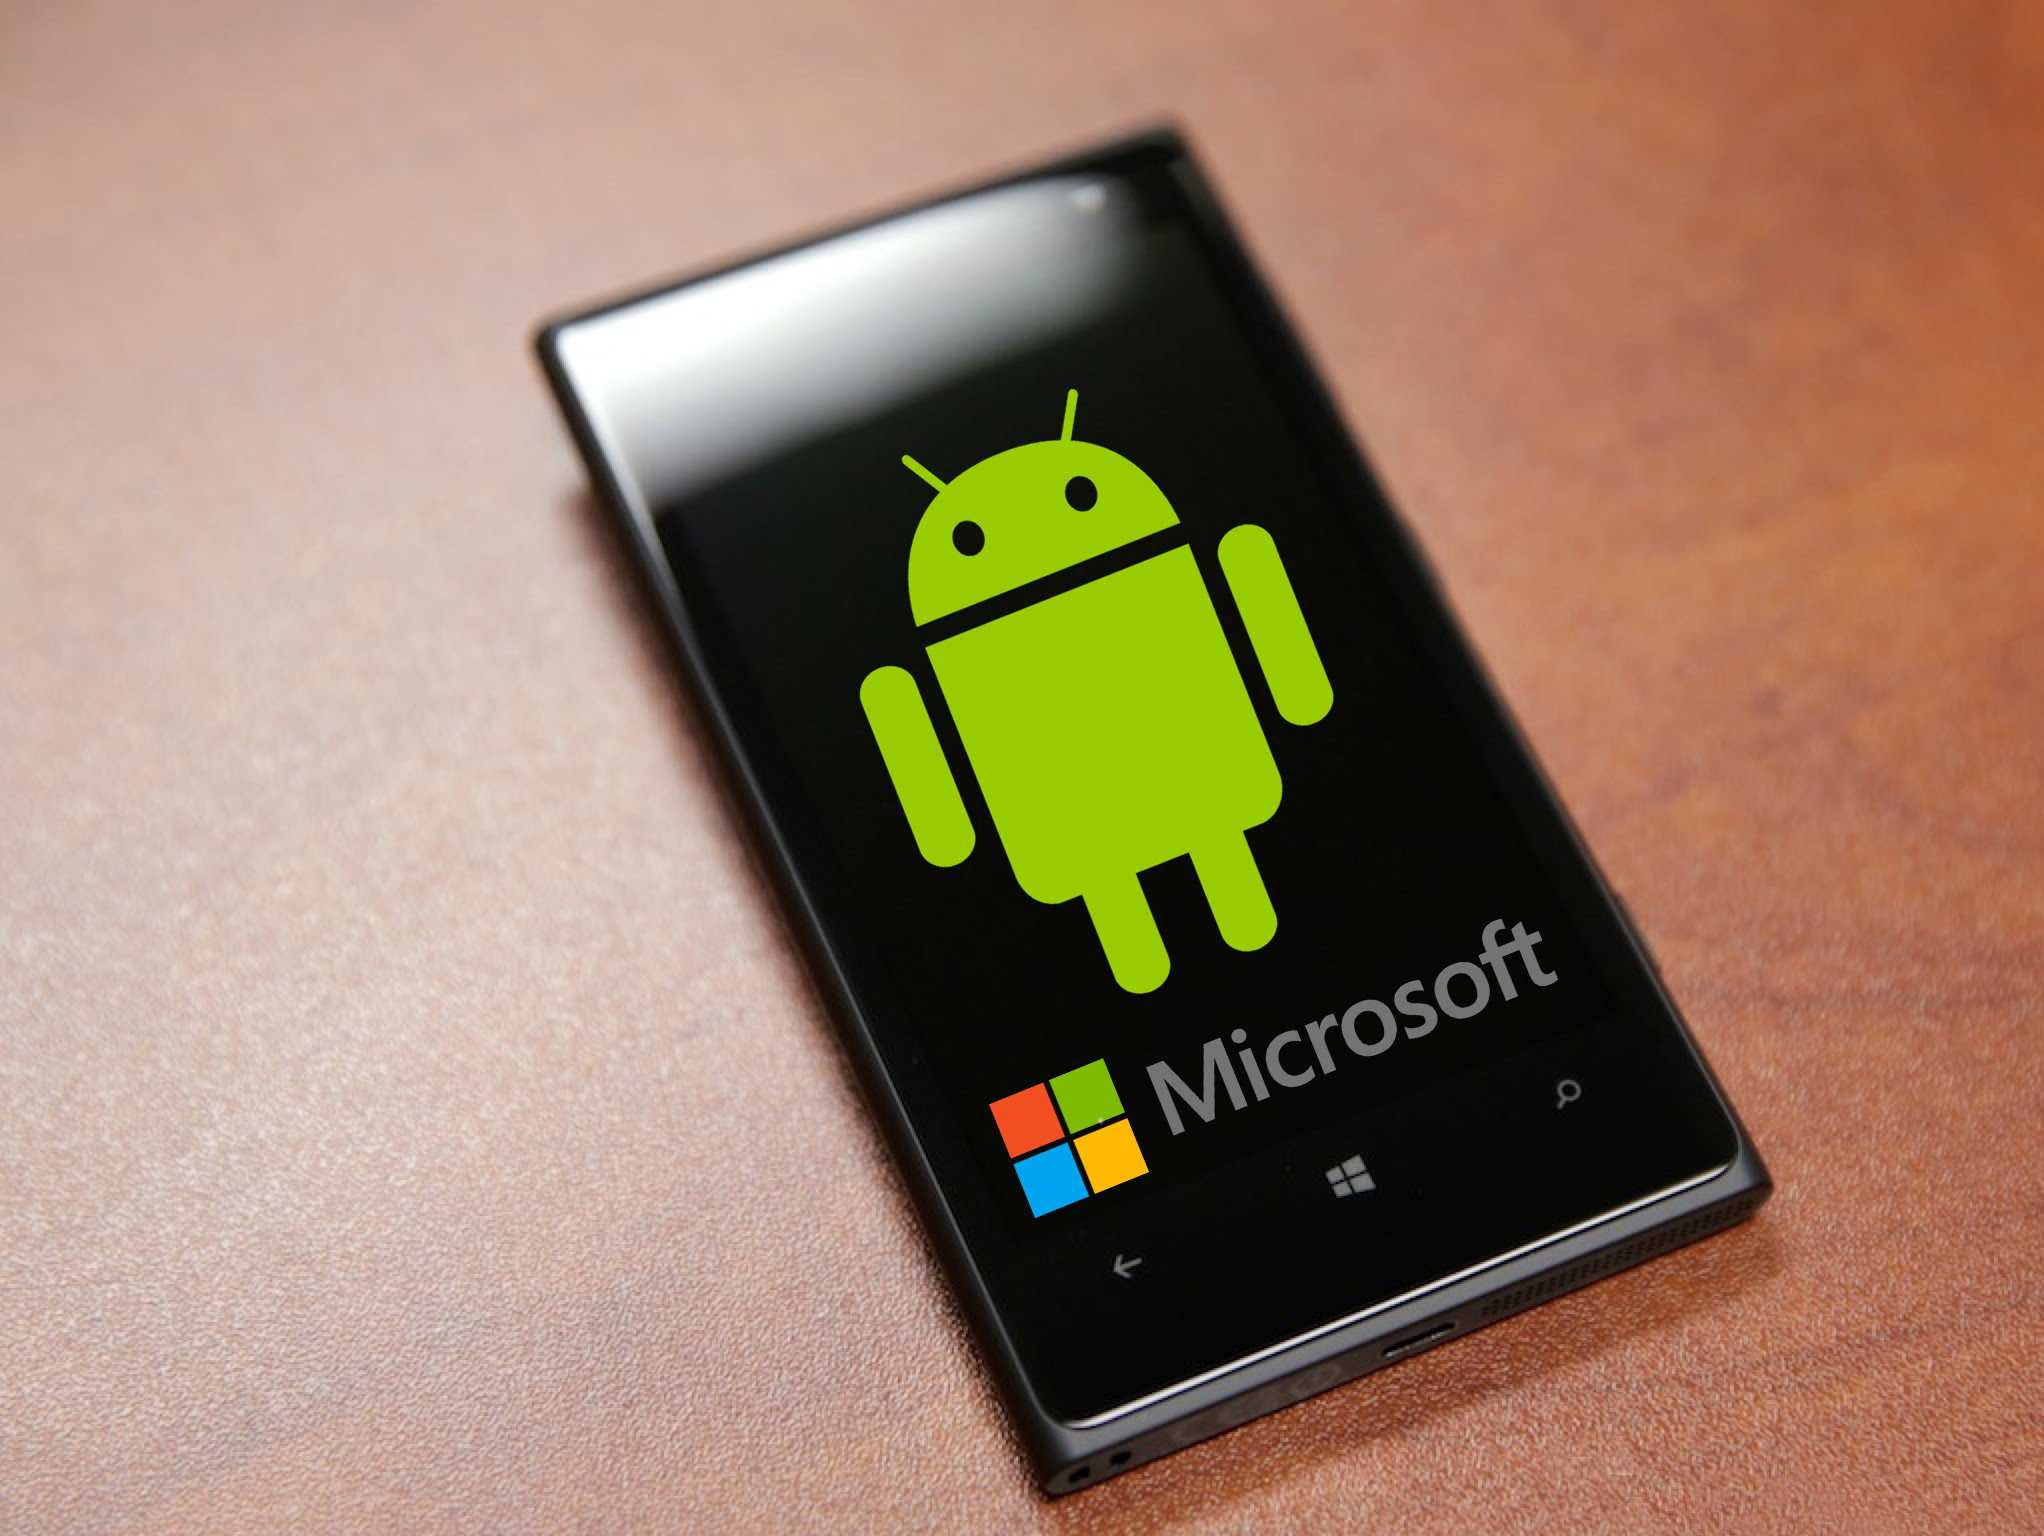 How to Install and Android App on a Windows phone